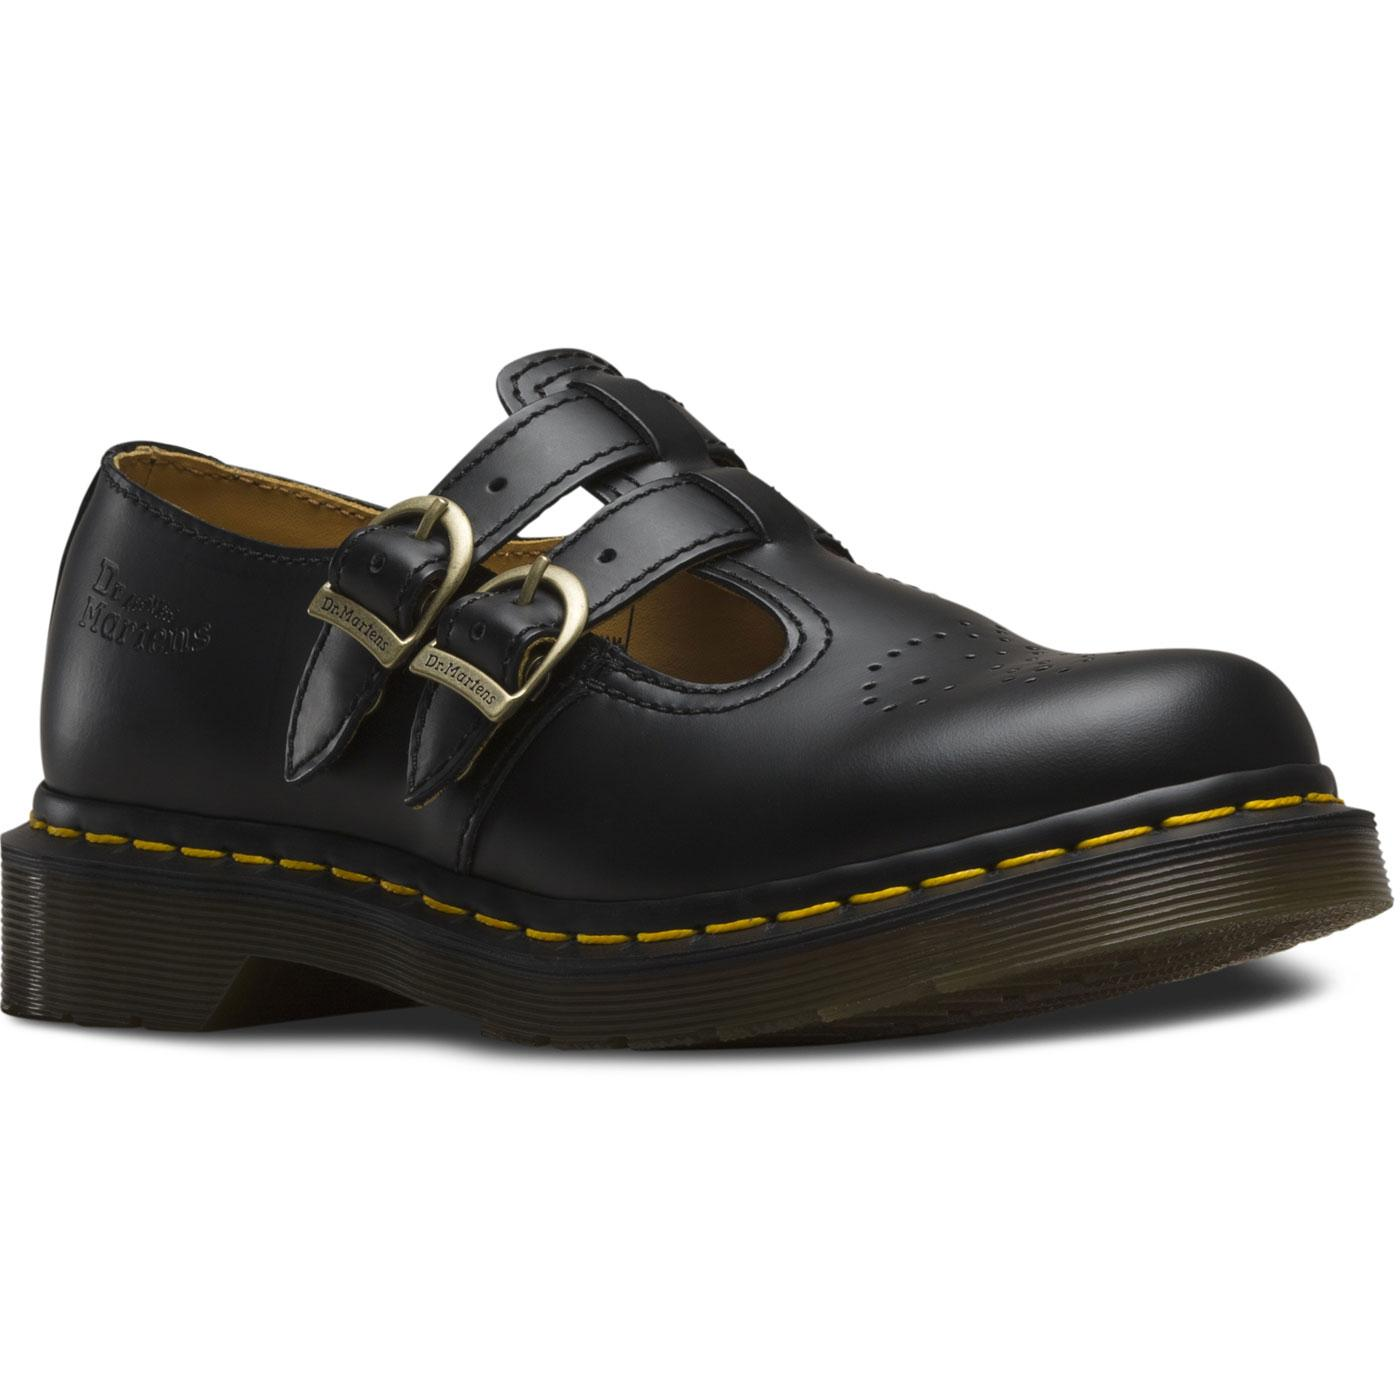 8065 Mary Jane DR MARTENS Black Smooth Shoes